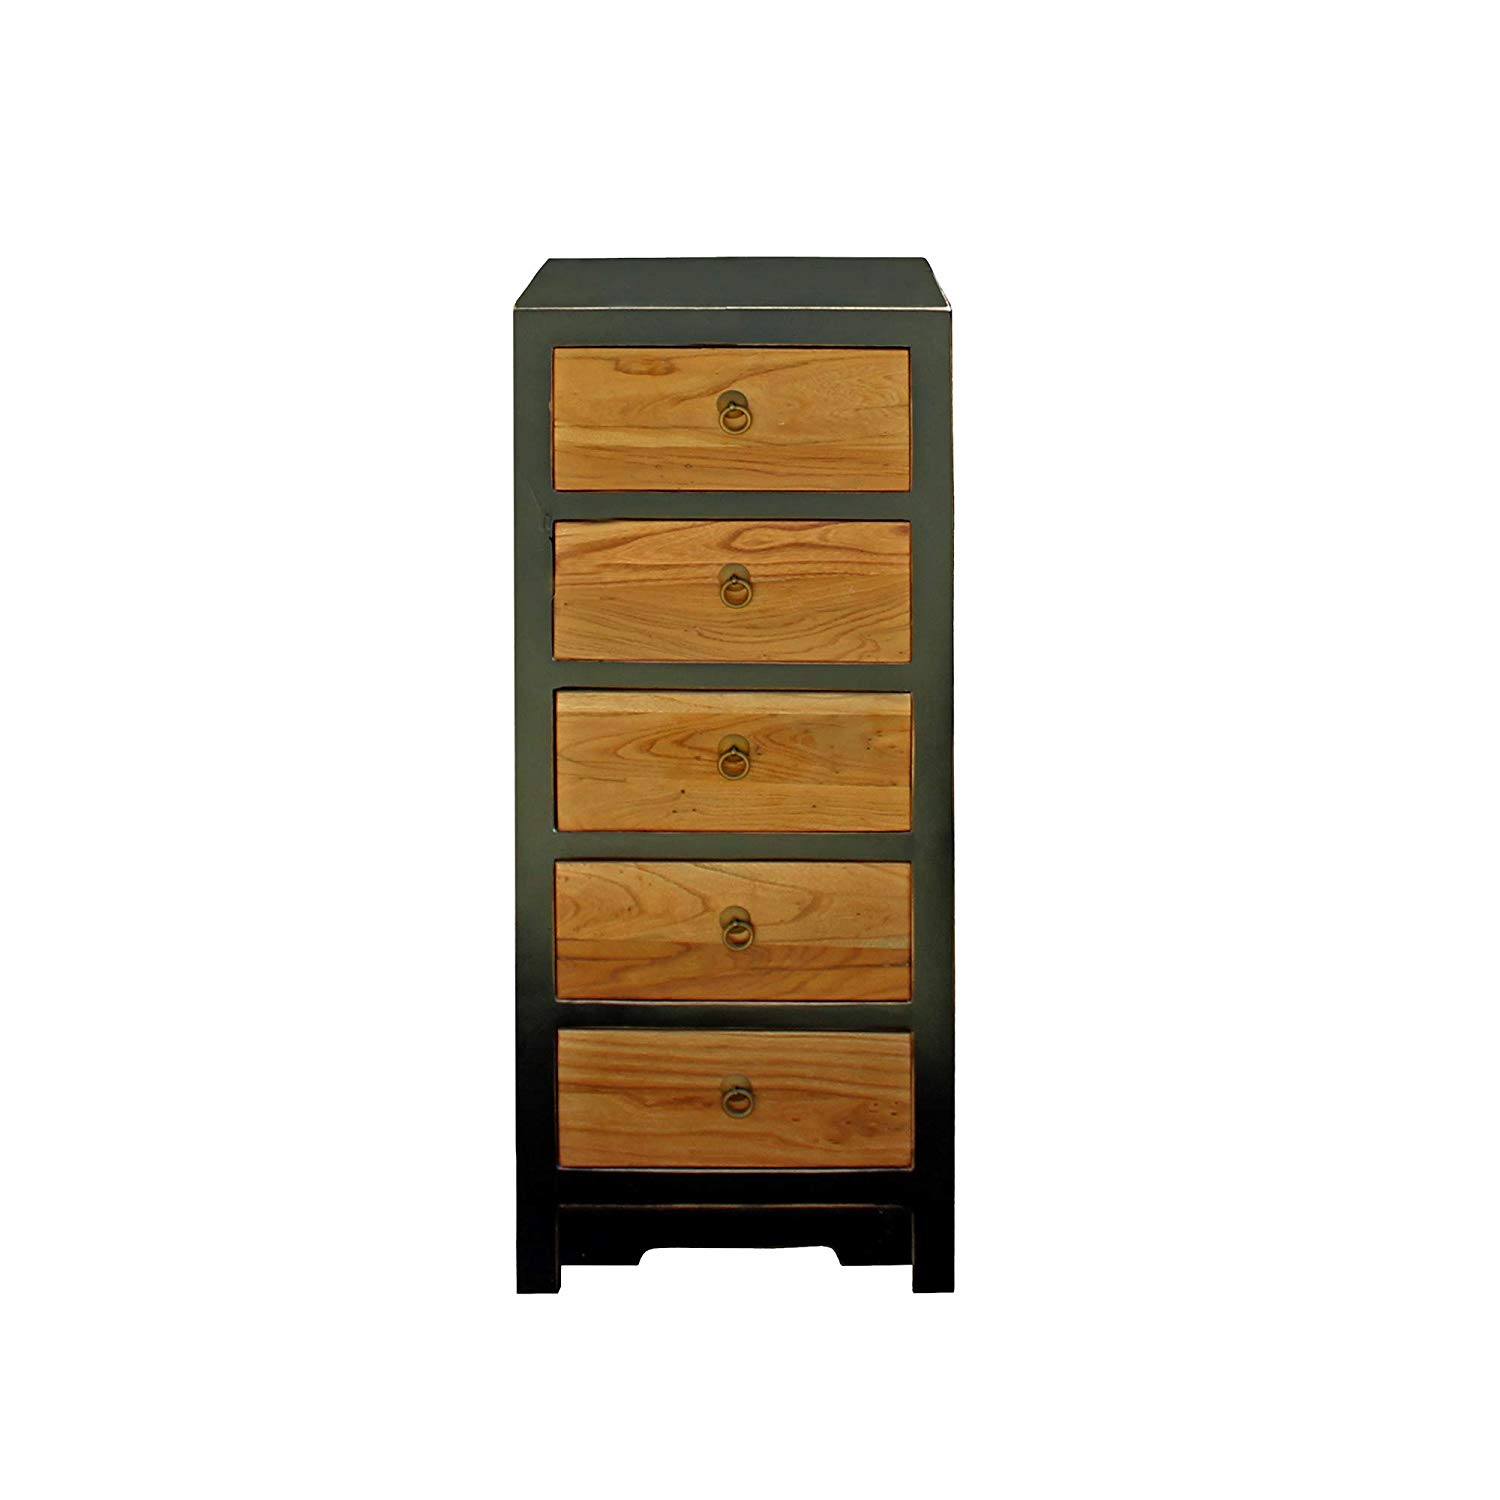 Black & Brown Five Drawers Slim Chest of Drawers Cabinet Acs4184